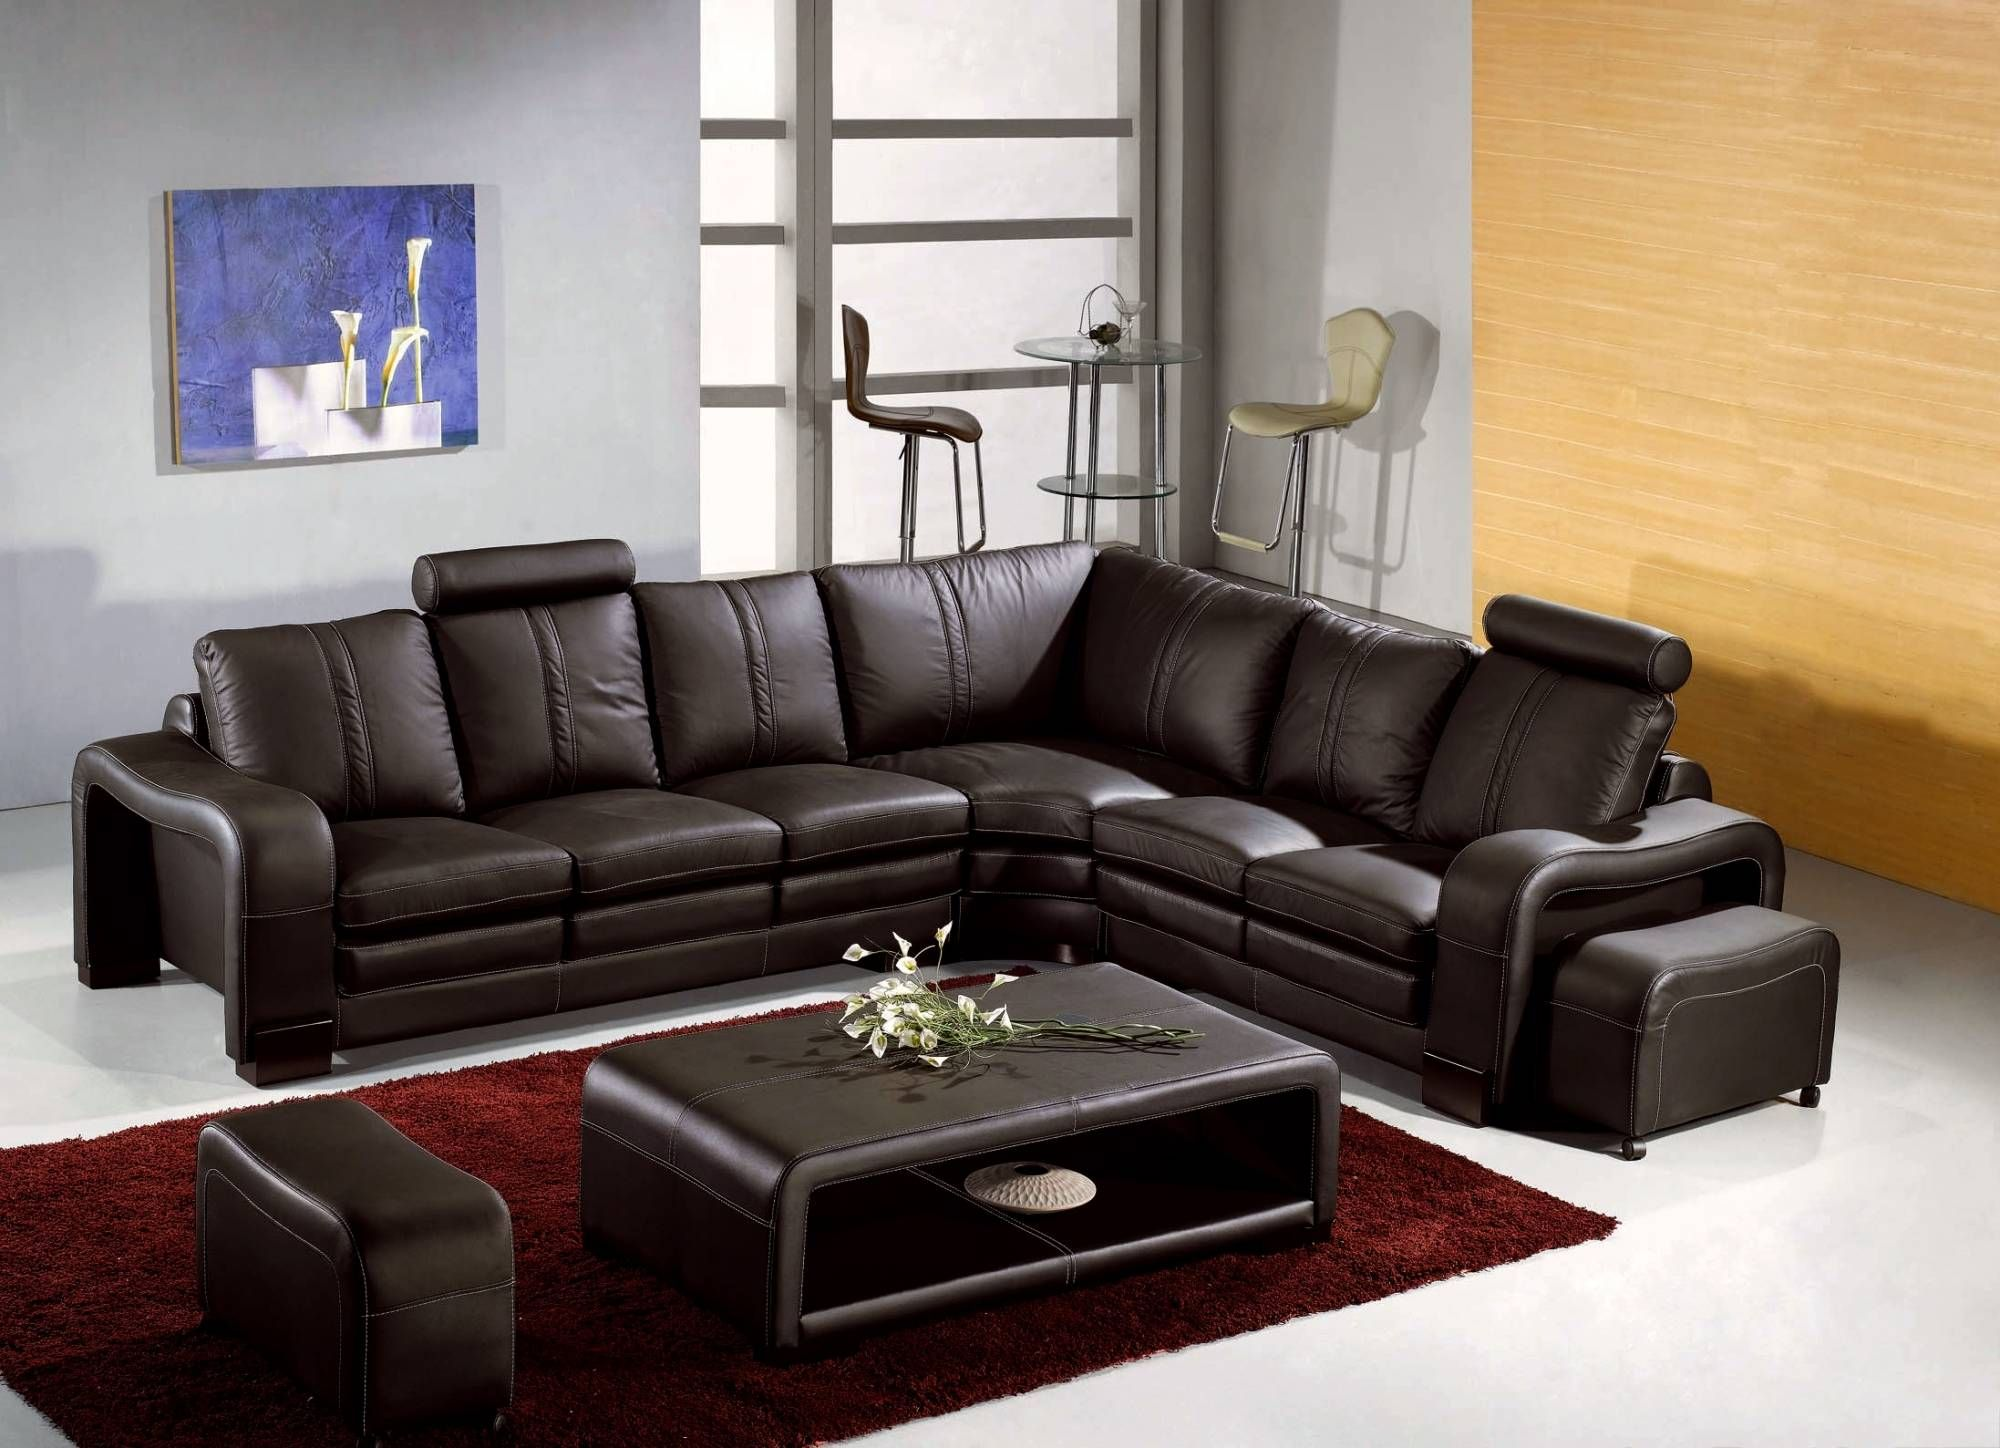 Canape Angle En Cuir Deco In Paris Canape D Angle En Cuir Marron Avec Appuie C In 2020 Modern Sofa Sectional Modern Leather Sectional Sofas Sectional Sofas Living Room